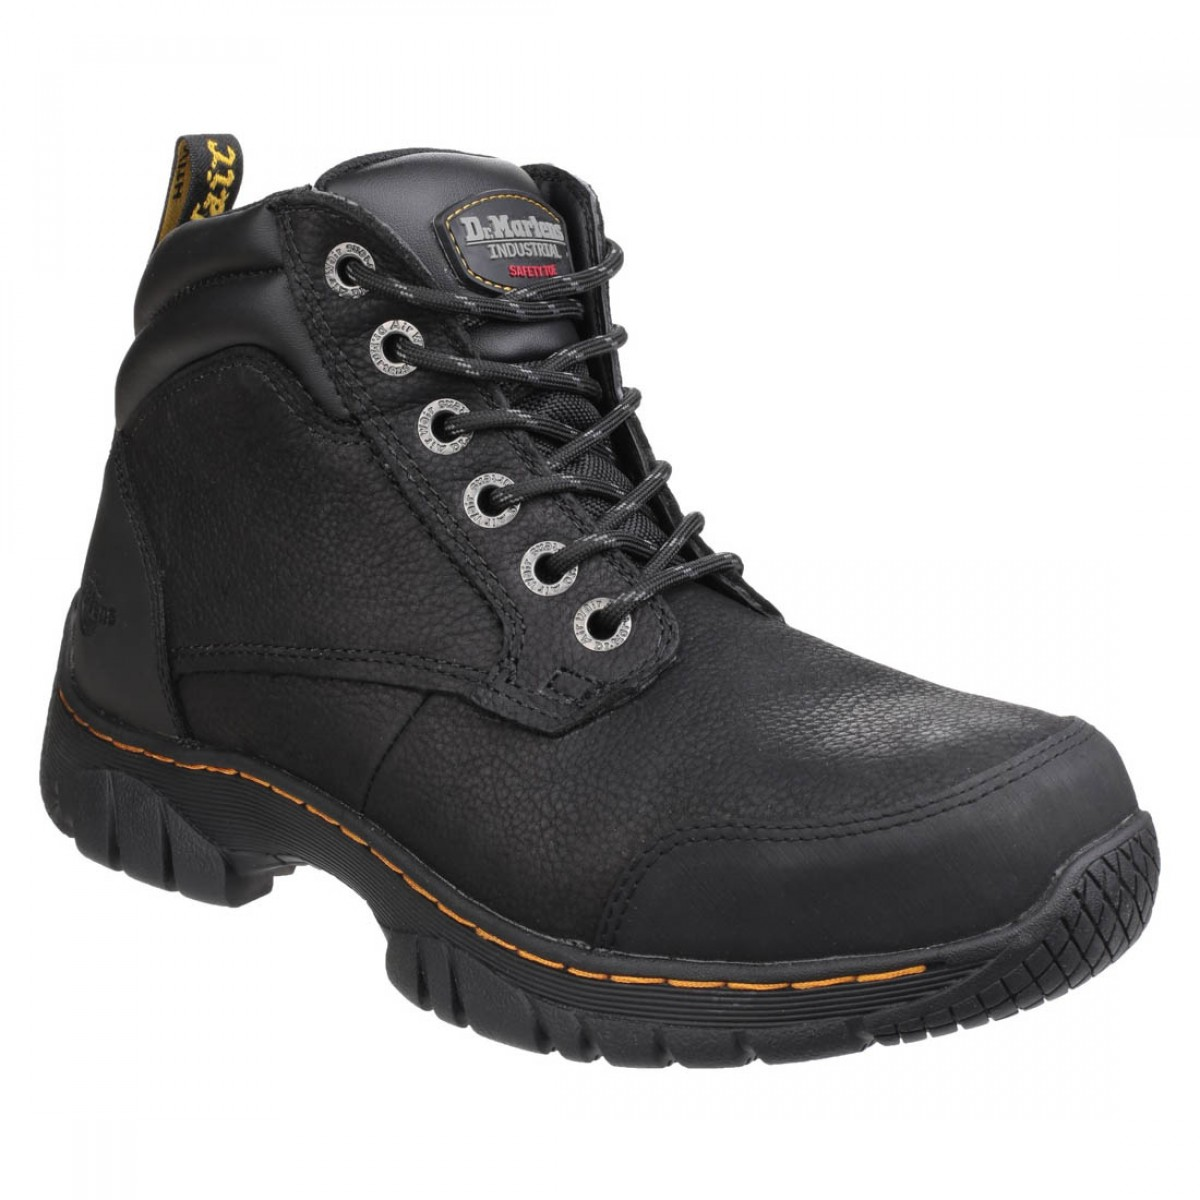 89846acf85b Dr Martens Safety Boots, DM Work Hikers and Dr Martens Safety Shoes